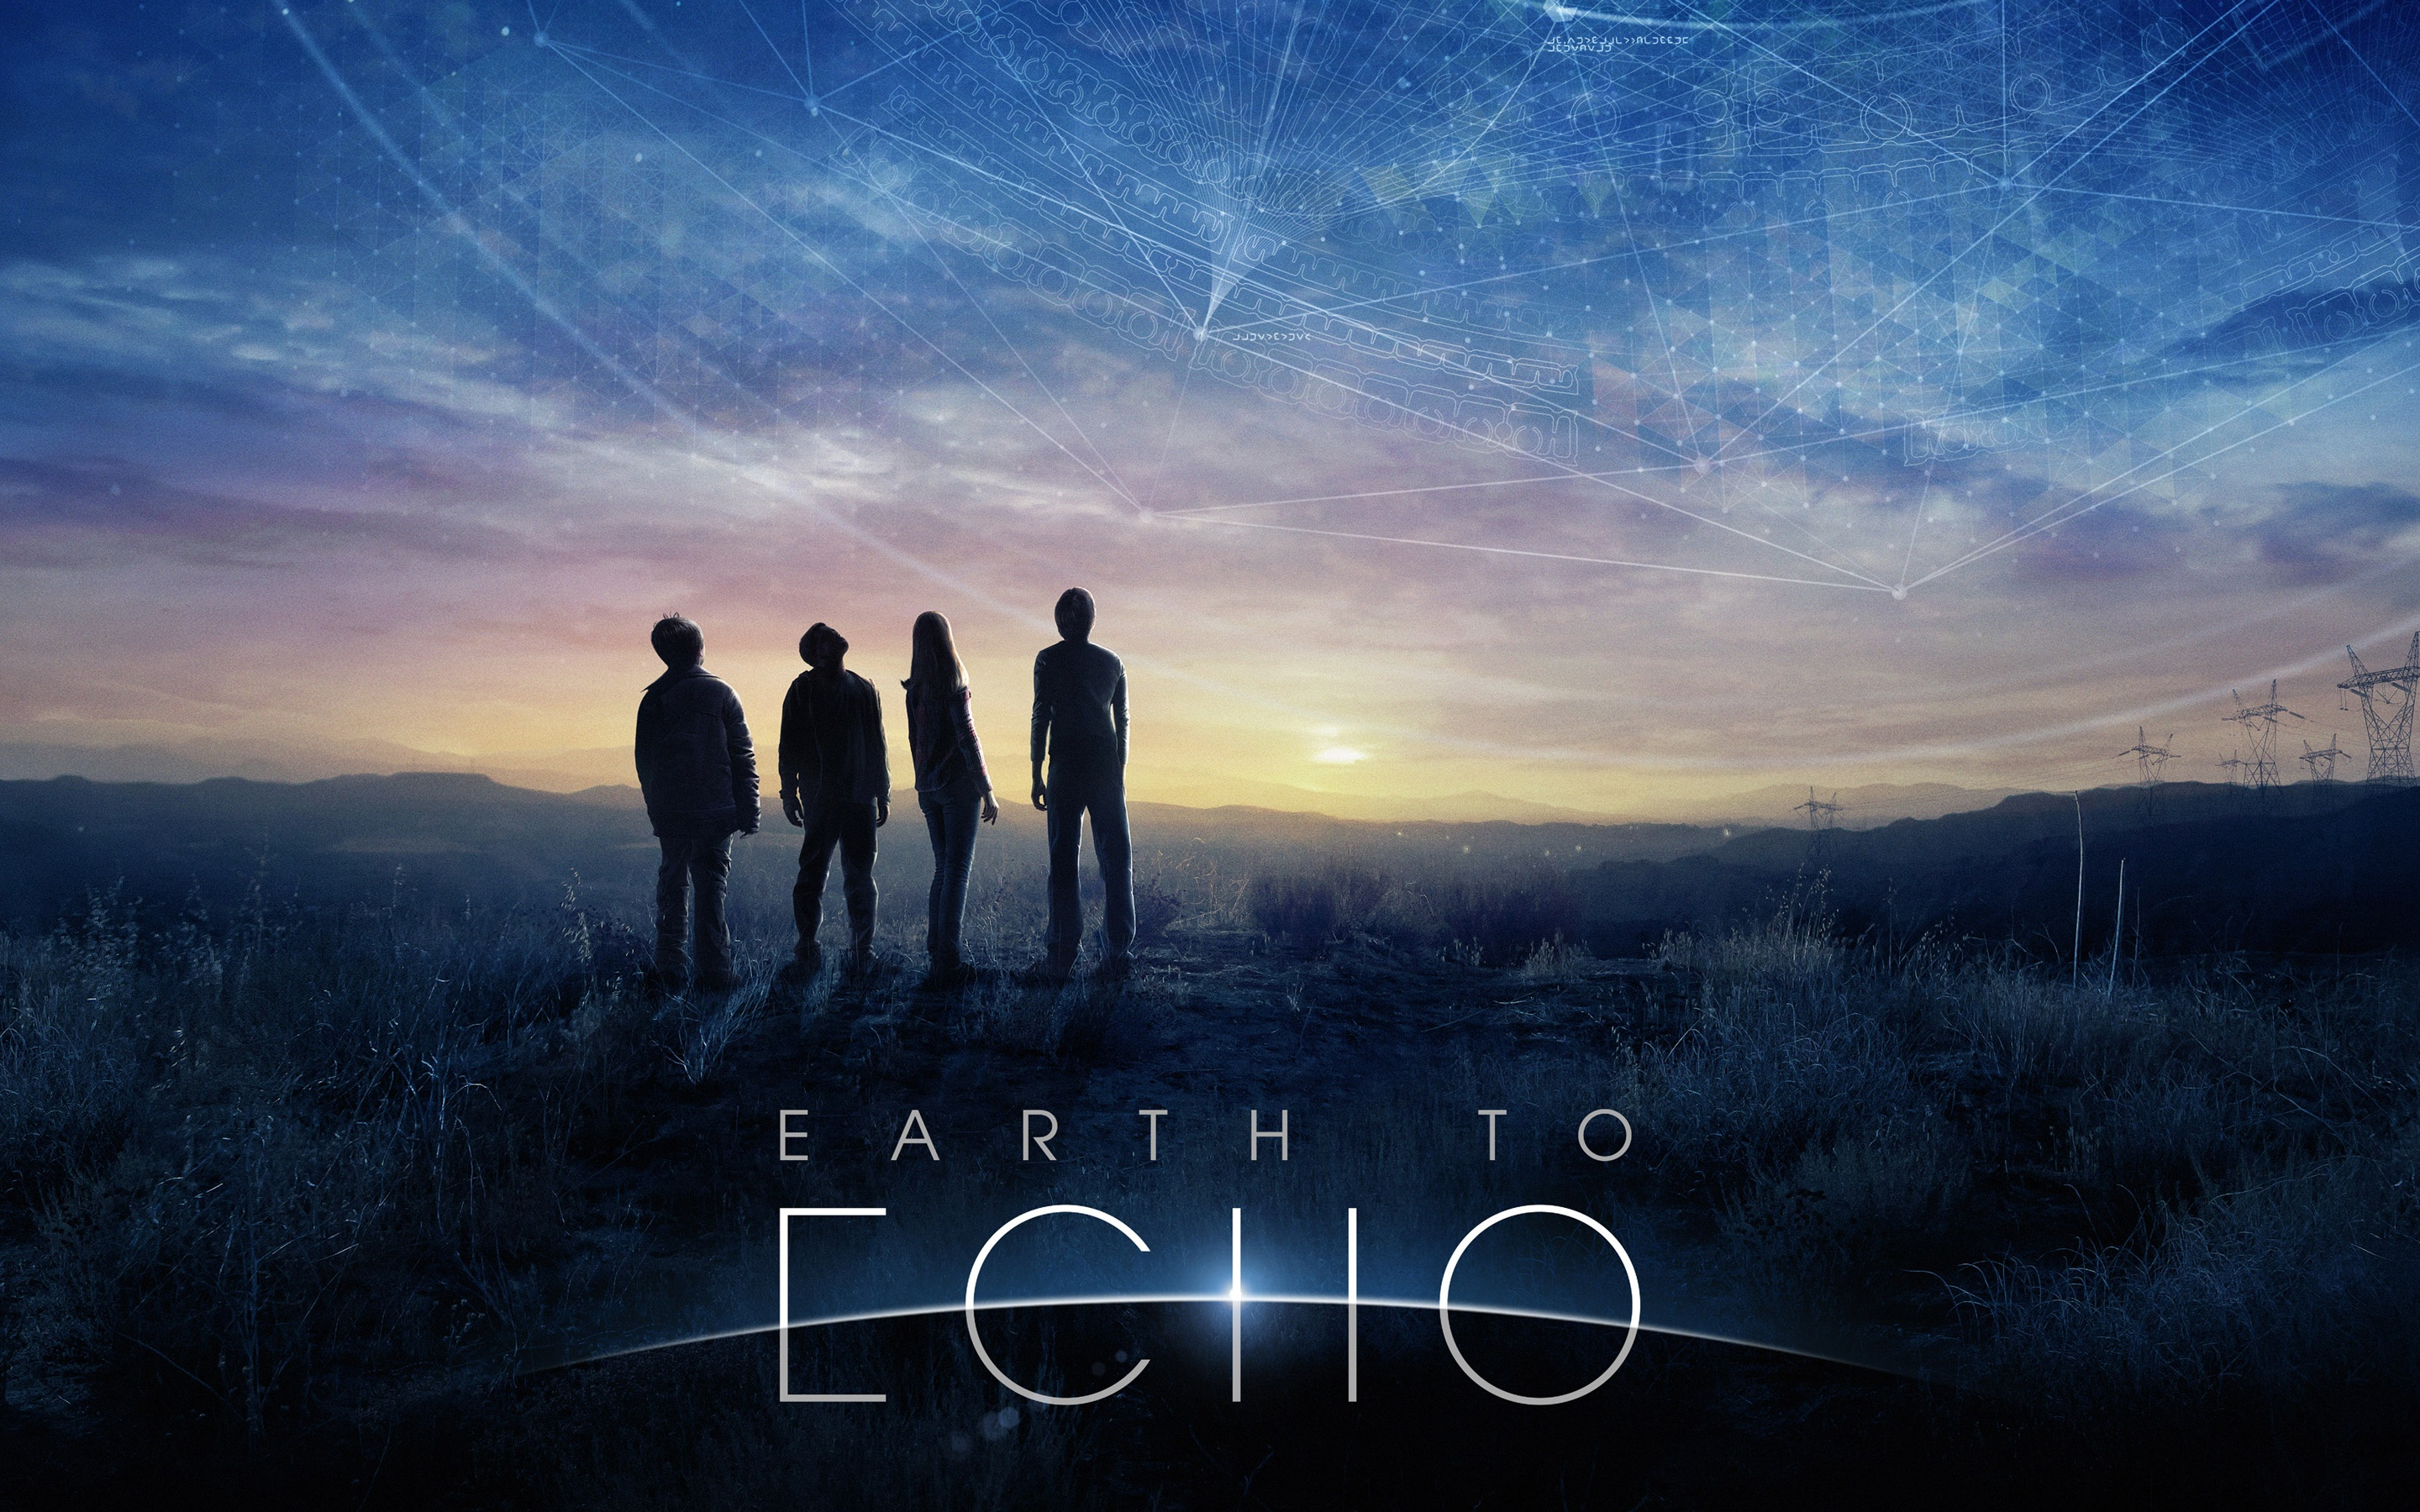 Earth to echo 2014 wallpaper high definition high quality